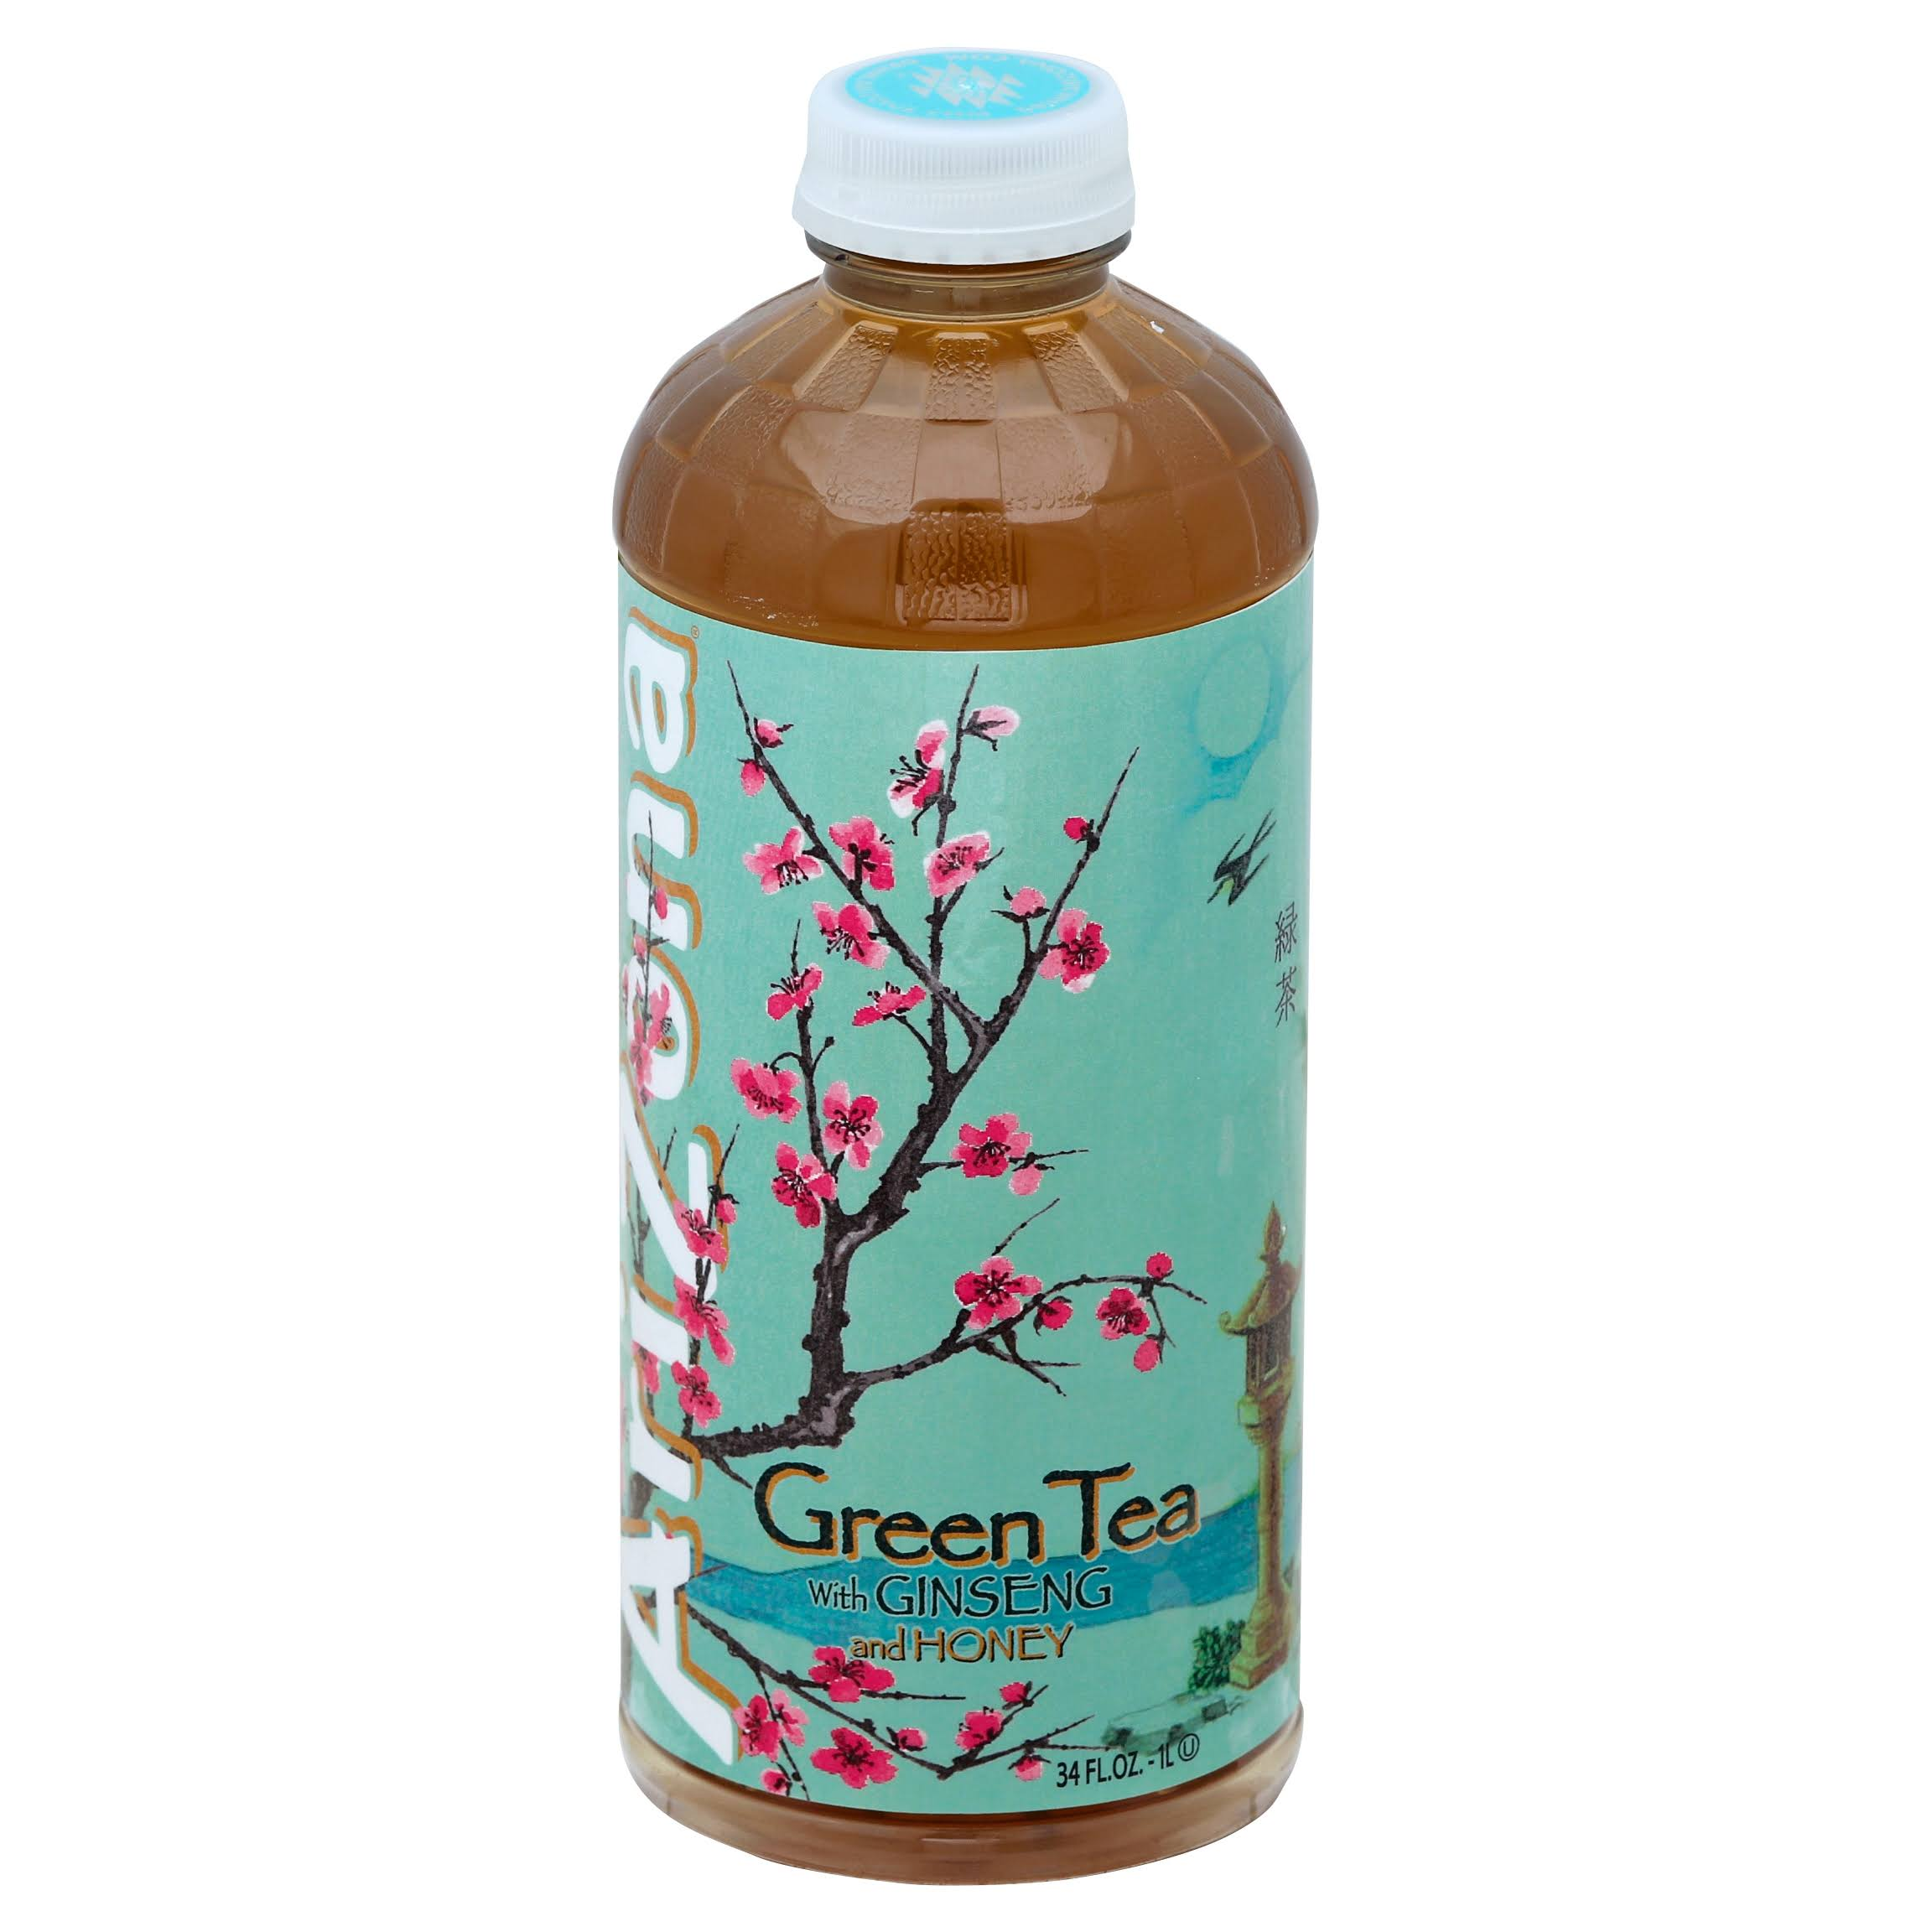 Arizona Green Tea, with Ginseng and Honey - 34 fl oz